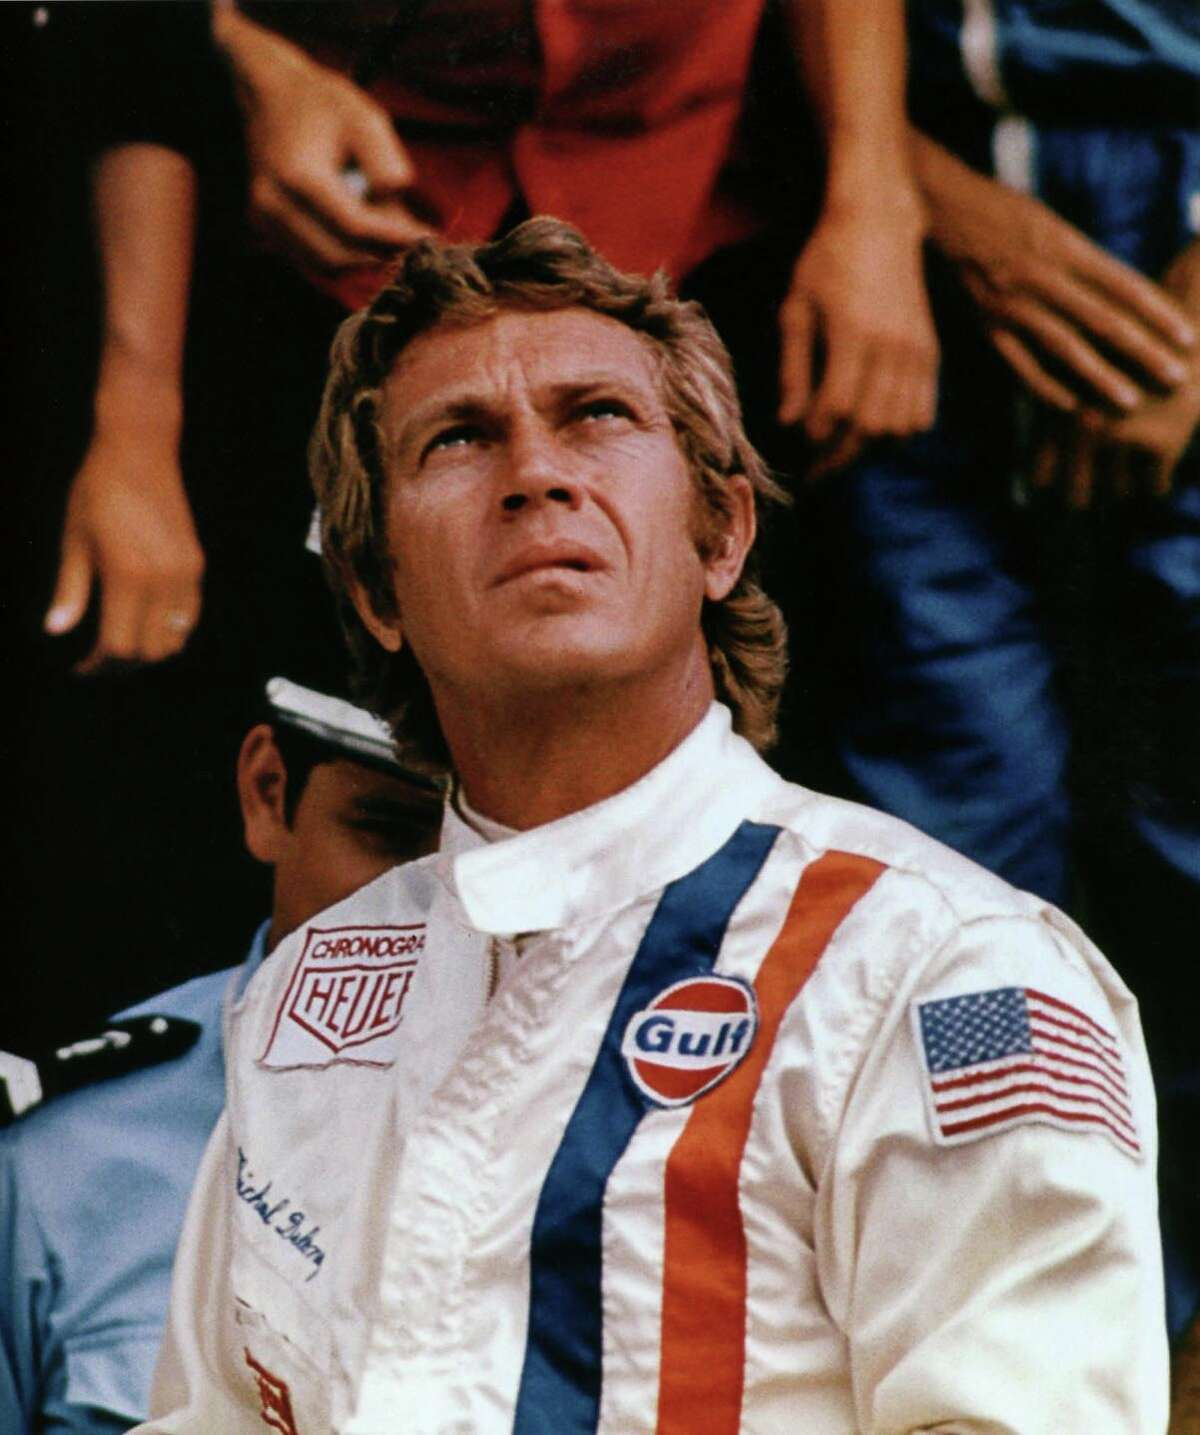 """Steve McQueen did all of his own driving in the 1971 racing drama """"Le Mans,"""" which will be shown at the Ridgefield Playhouse on May 28."""